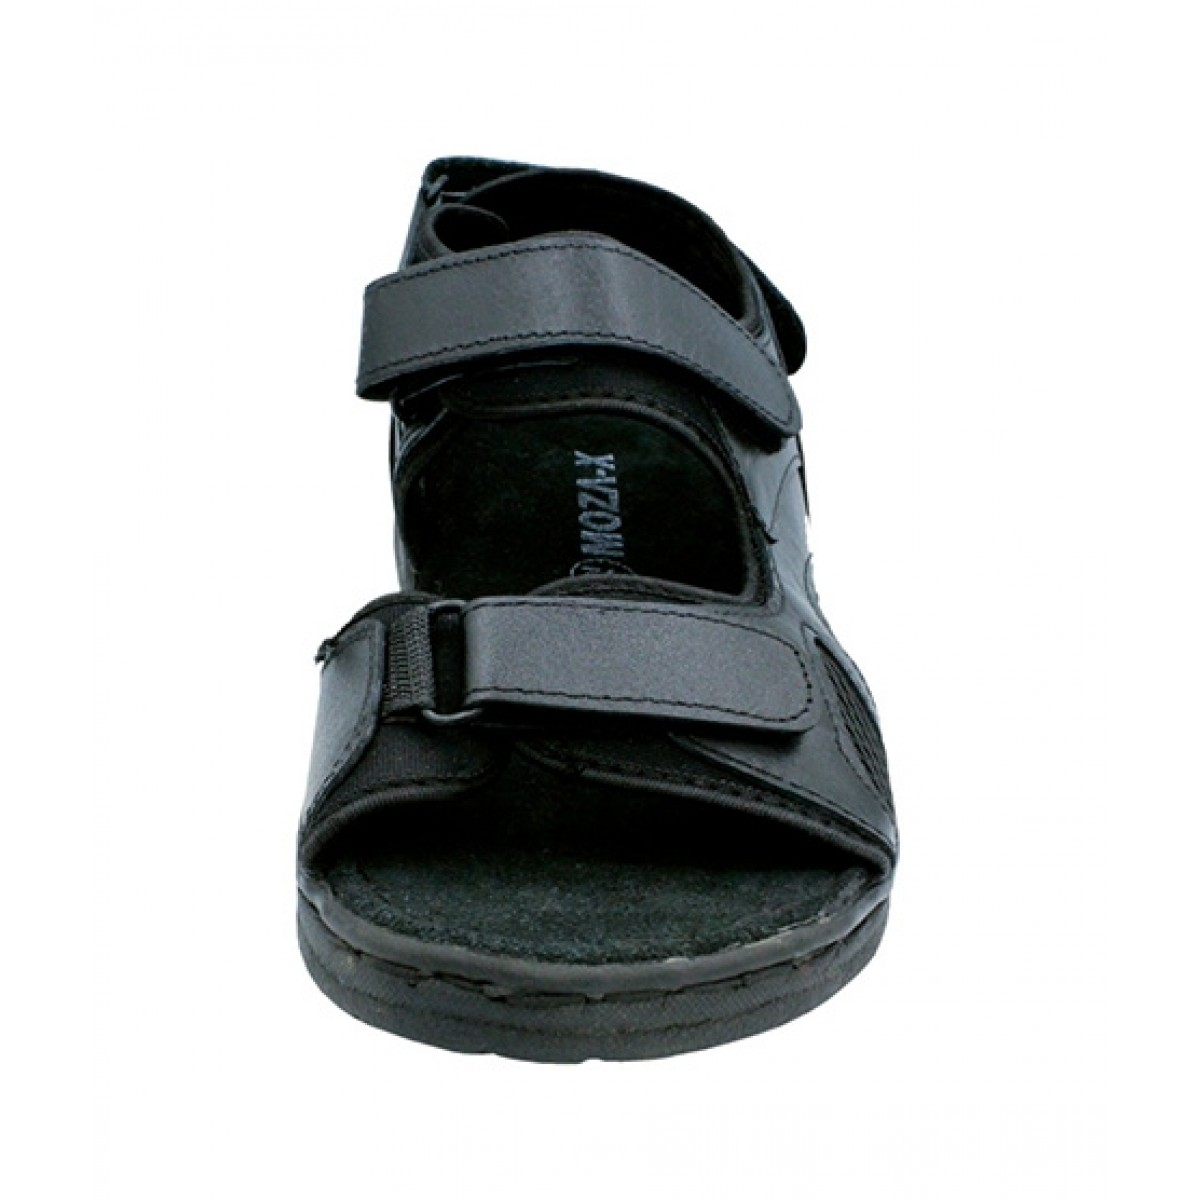 MOZAX Casual Leather Sandal For Men Black (0002)